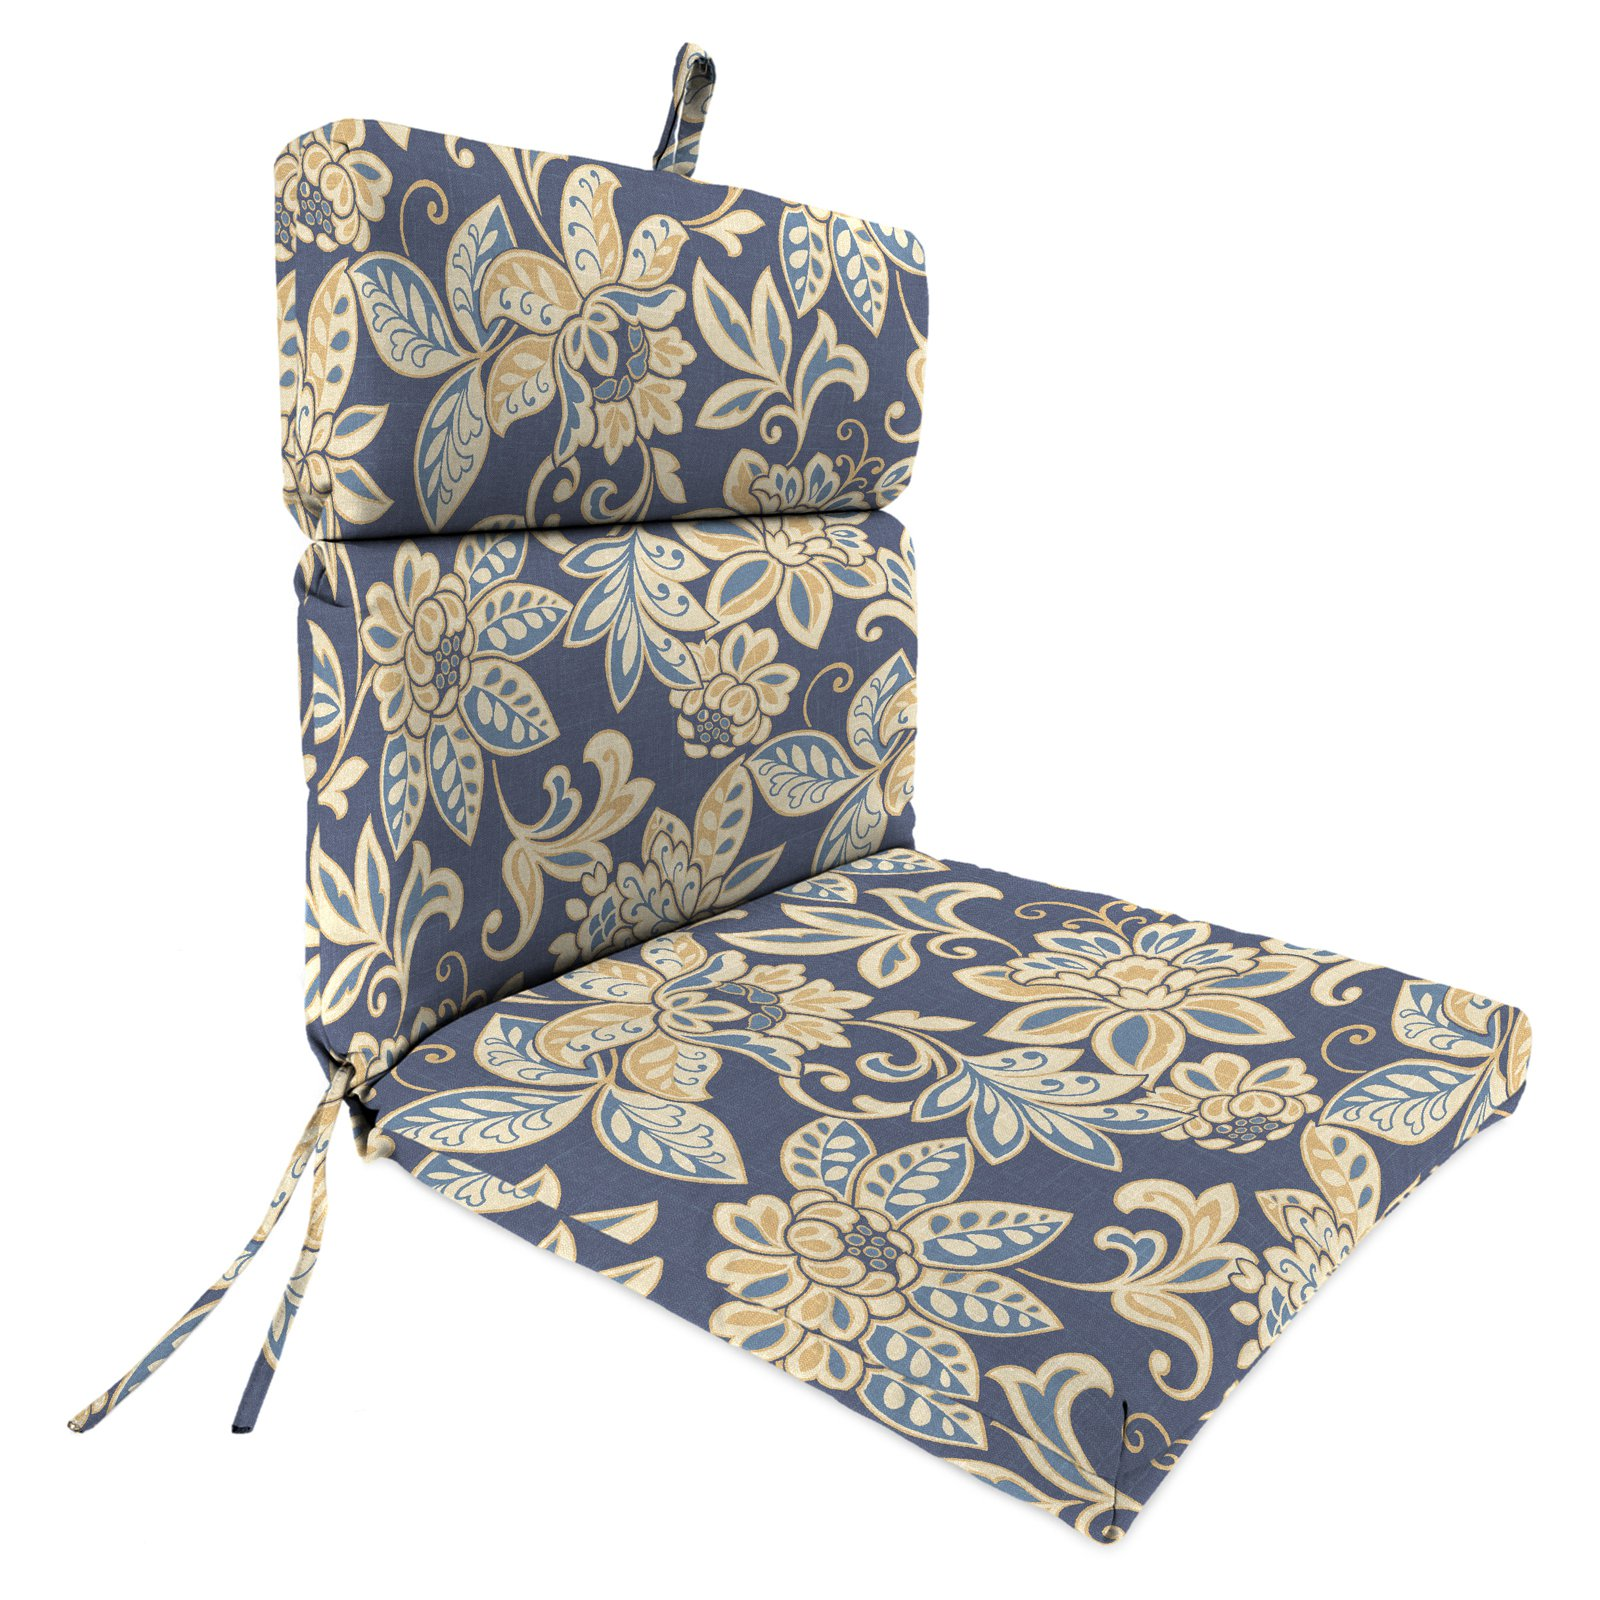 patio chair cushions jordan manufacturing 44 x 22 in. outdoor chair cushion - outdoor cushions  at hayneedle XBWMKMJ